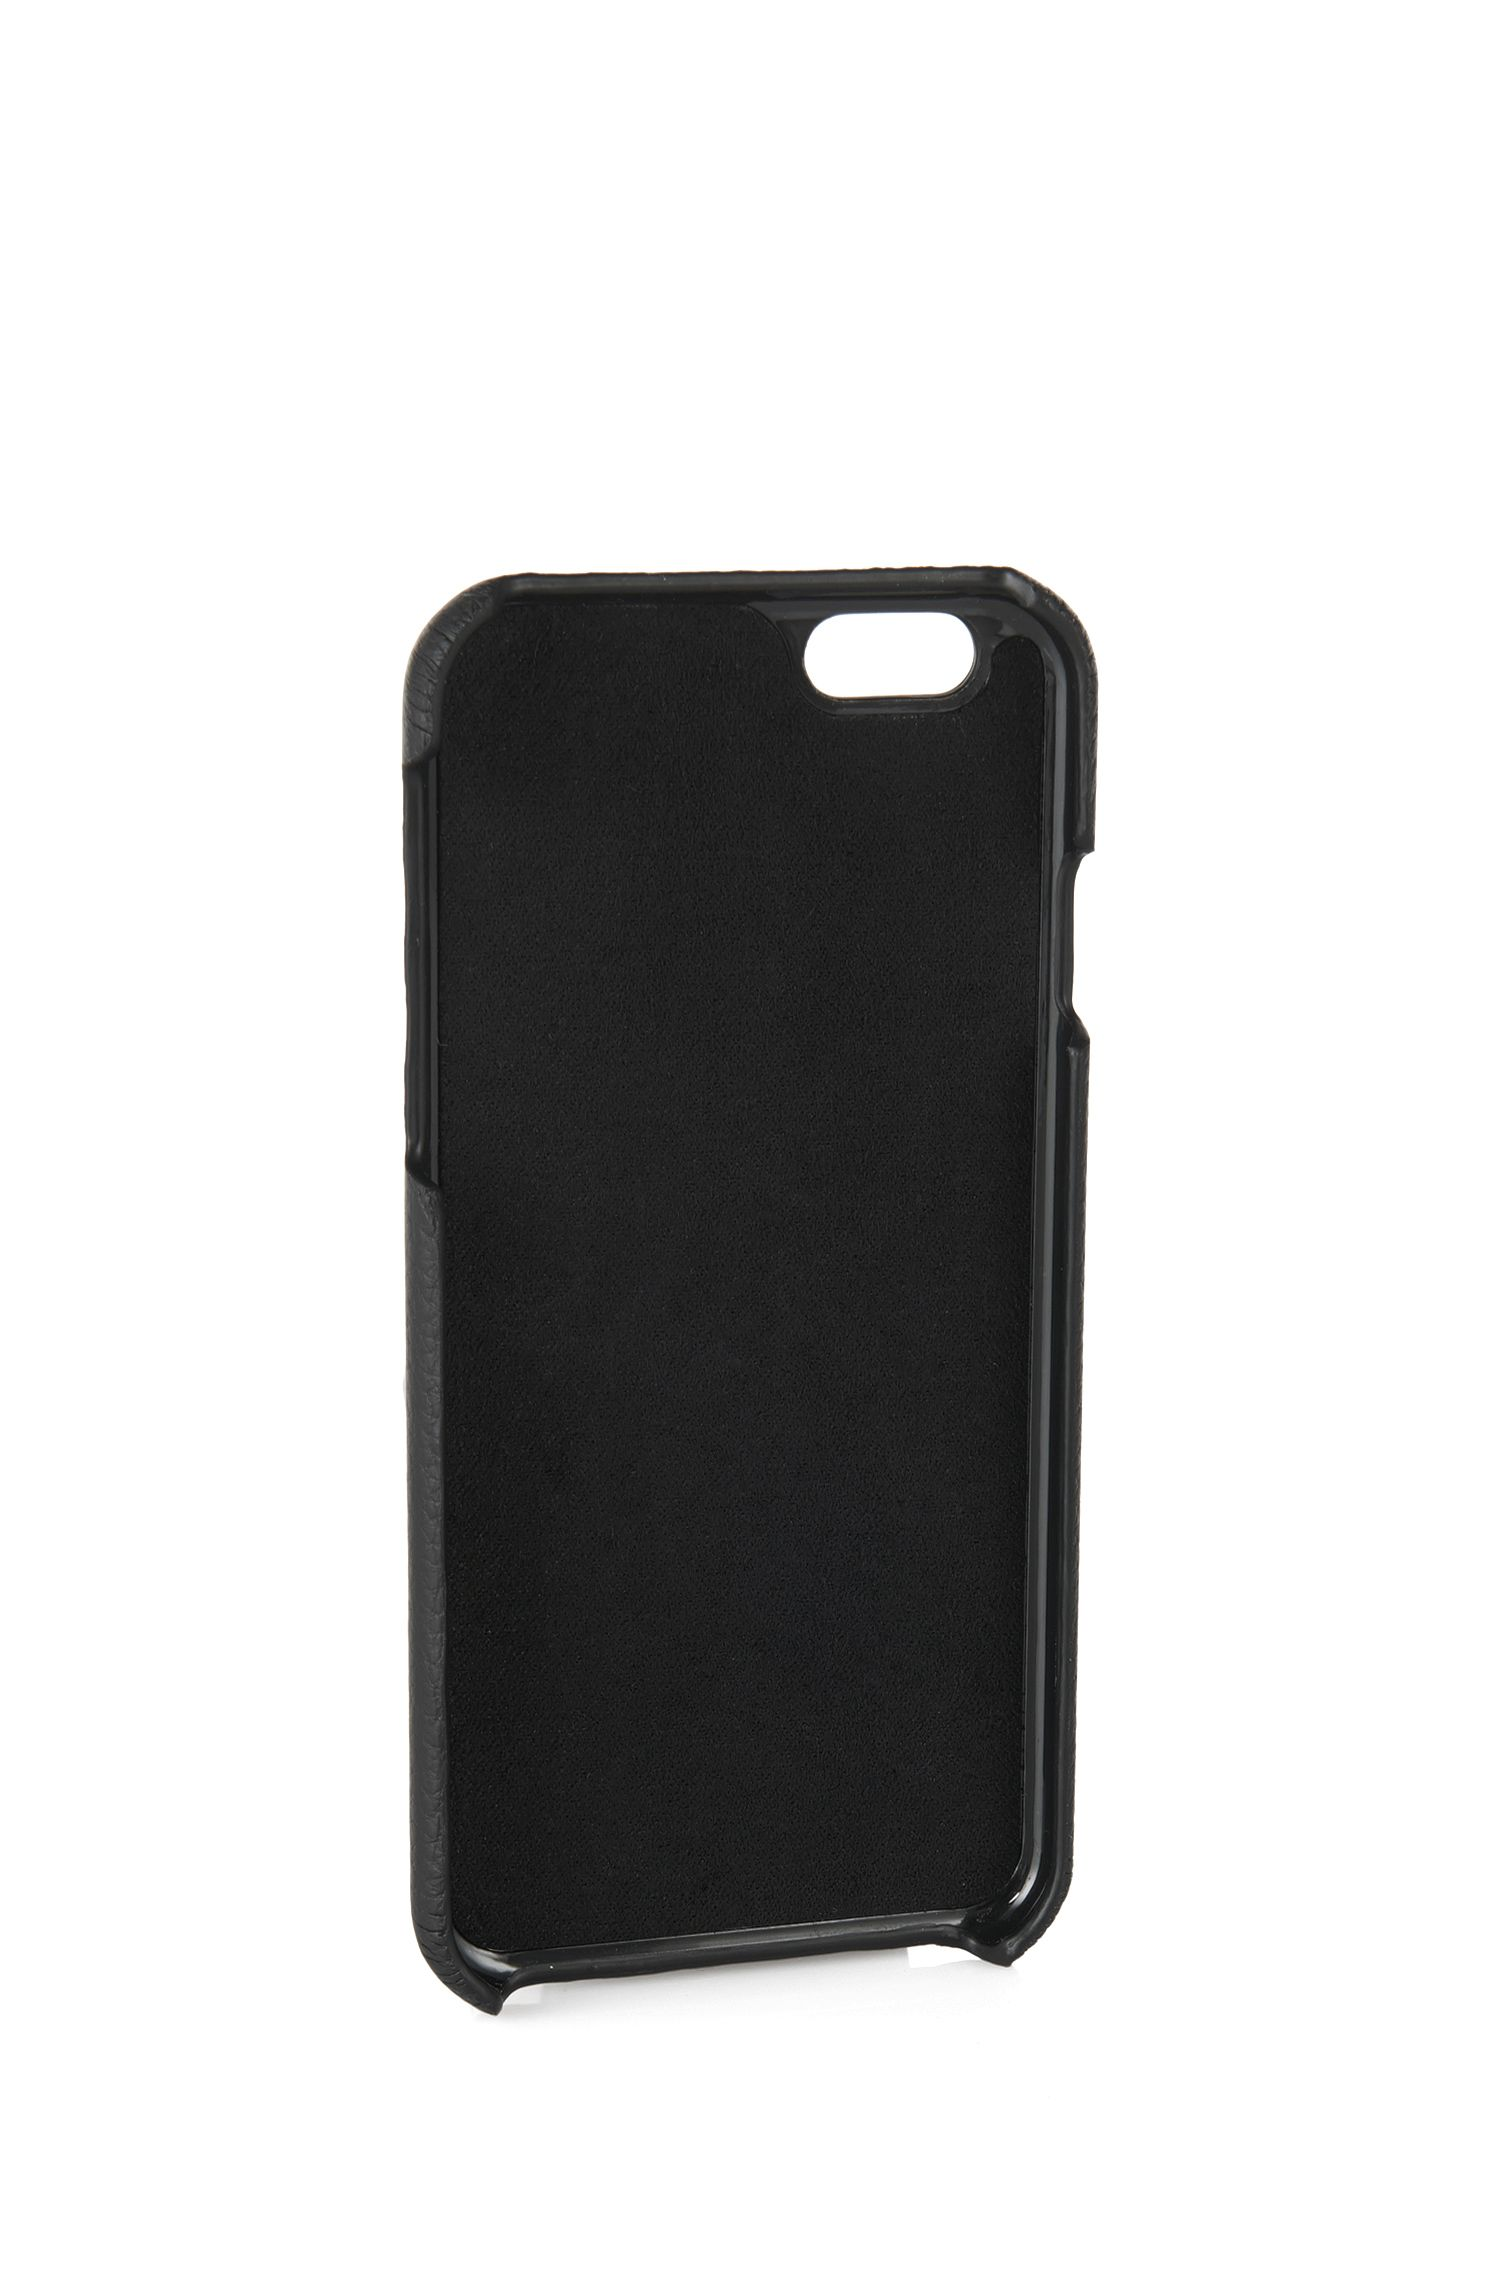 Coque pour smartphone, pour iPhone 6 : « Traveller_Phone »